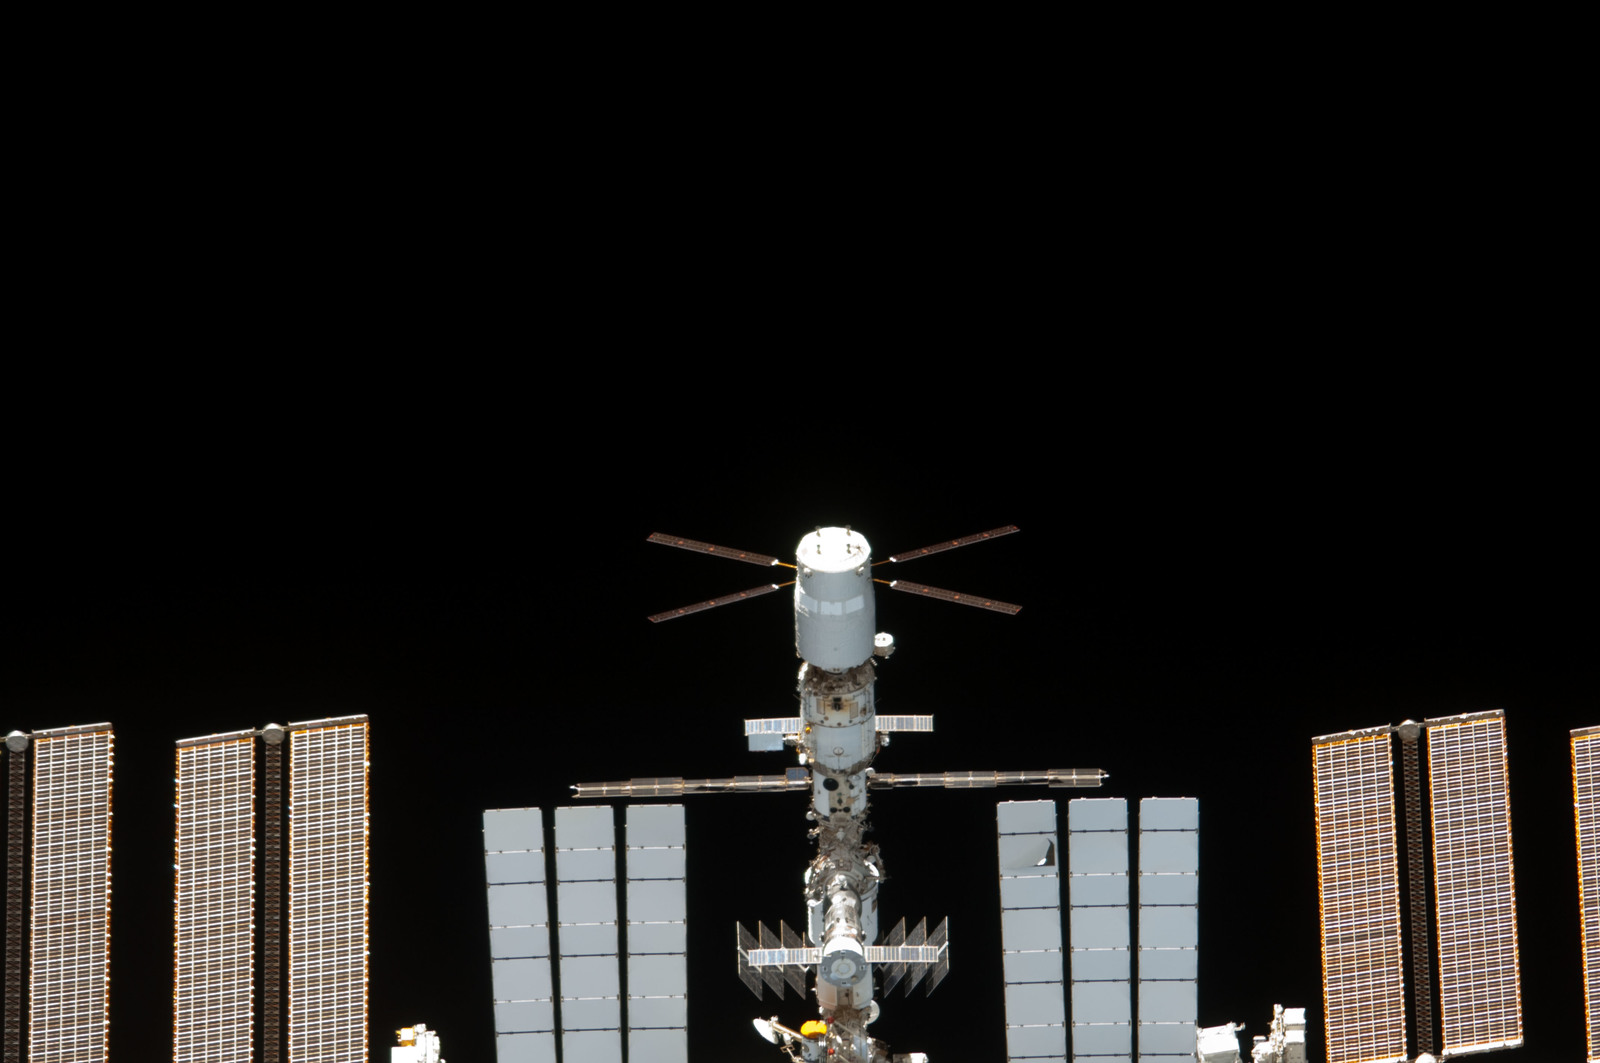 S134E011565 - STS-134 - Overall view of ISS